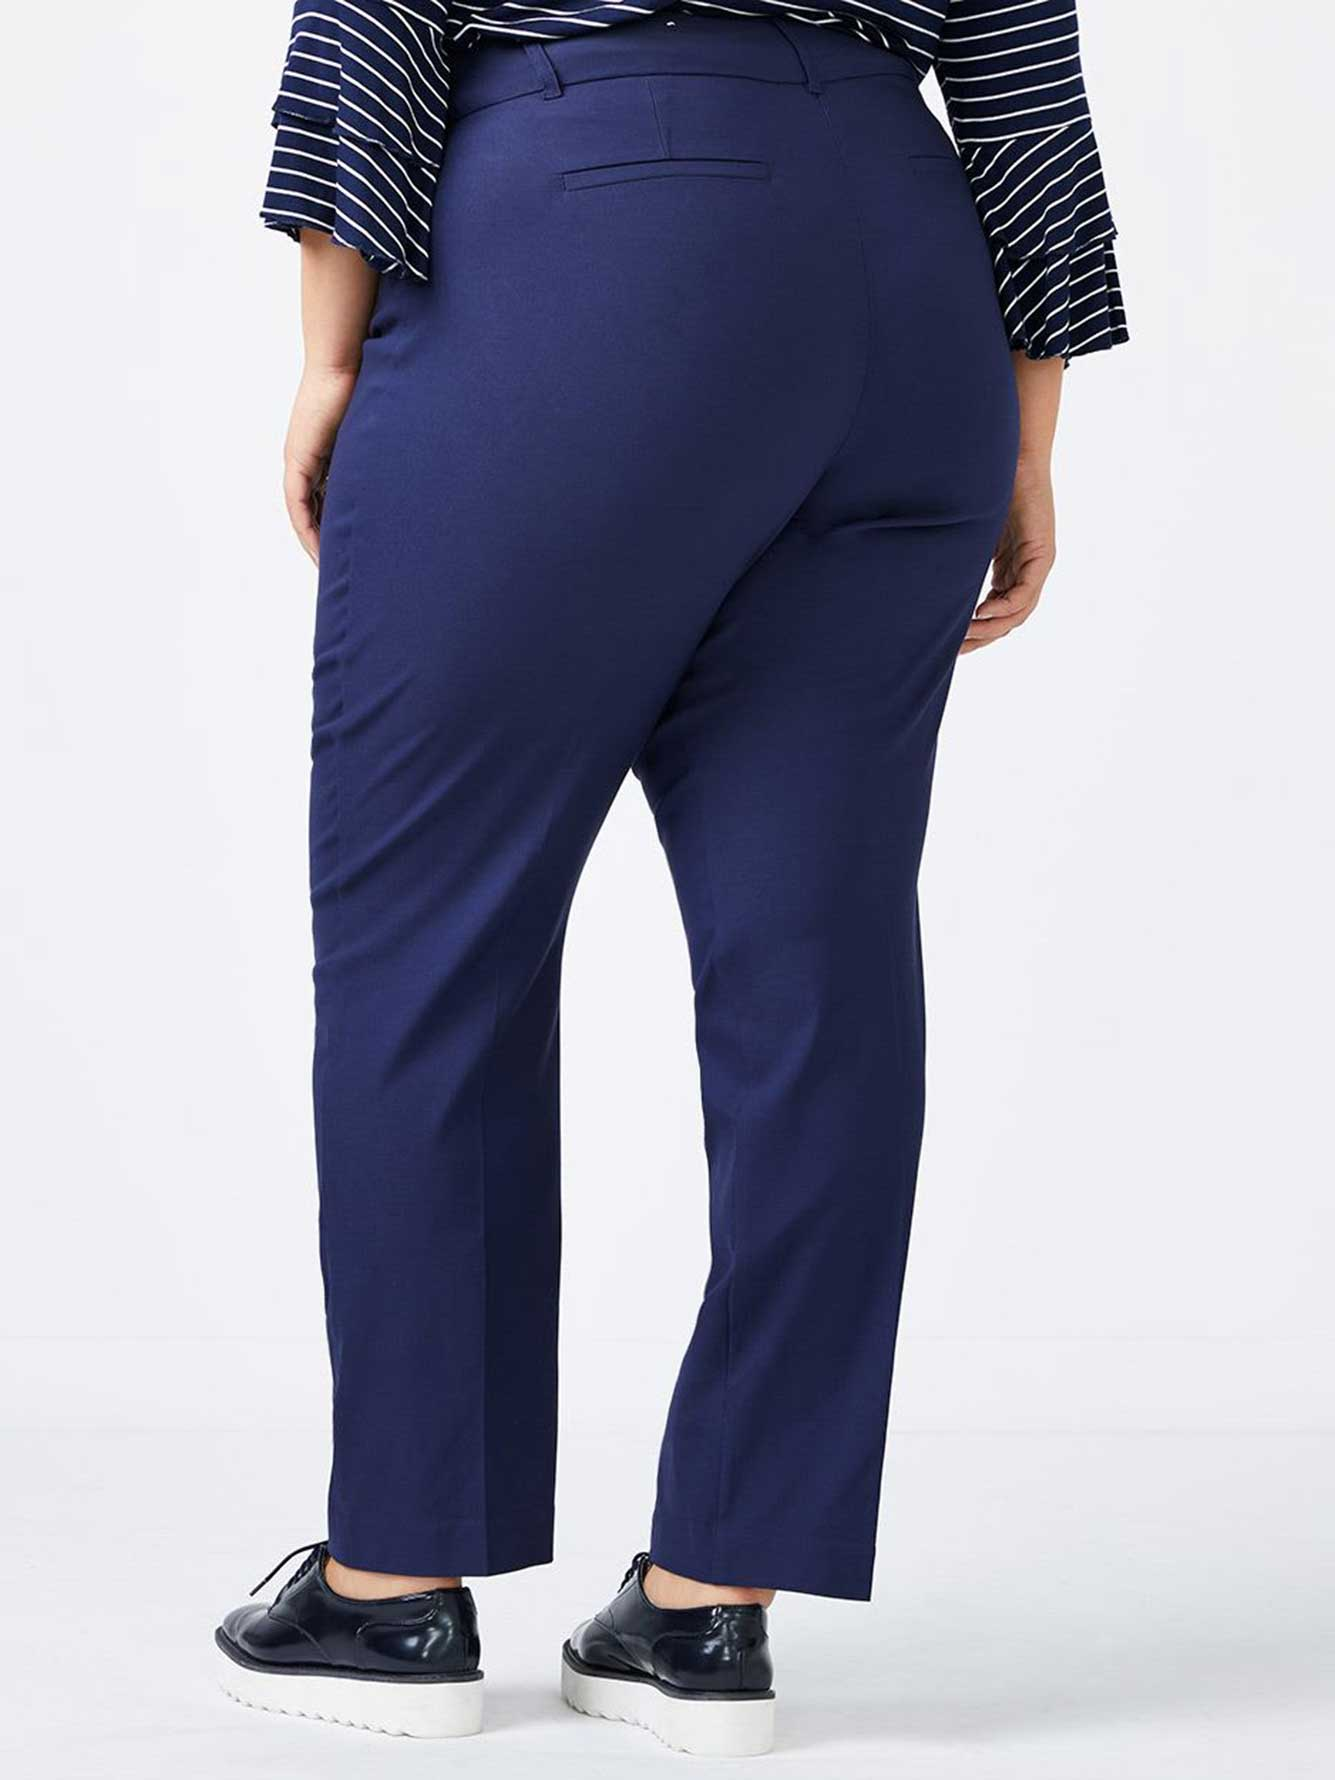 Petite Savvy Soft Touch Straight Leg Pant - In Every Story